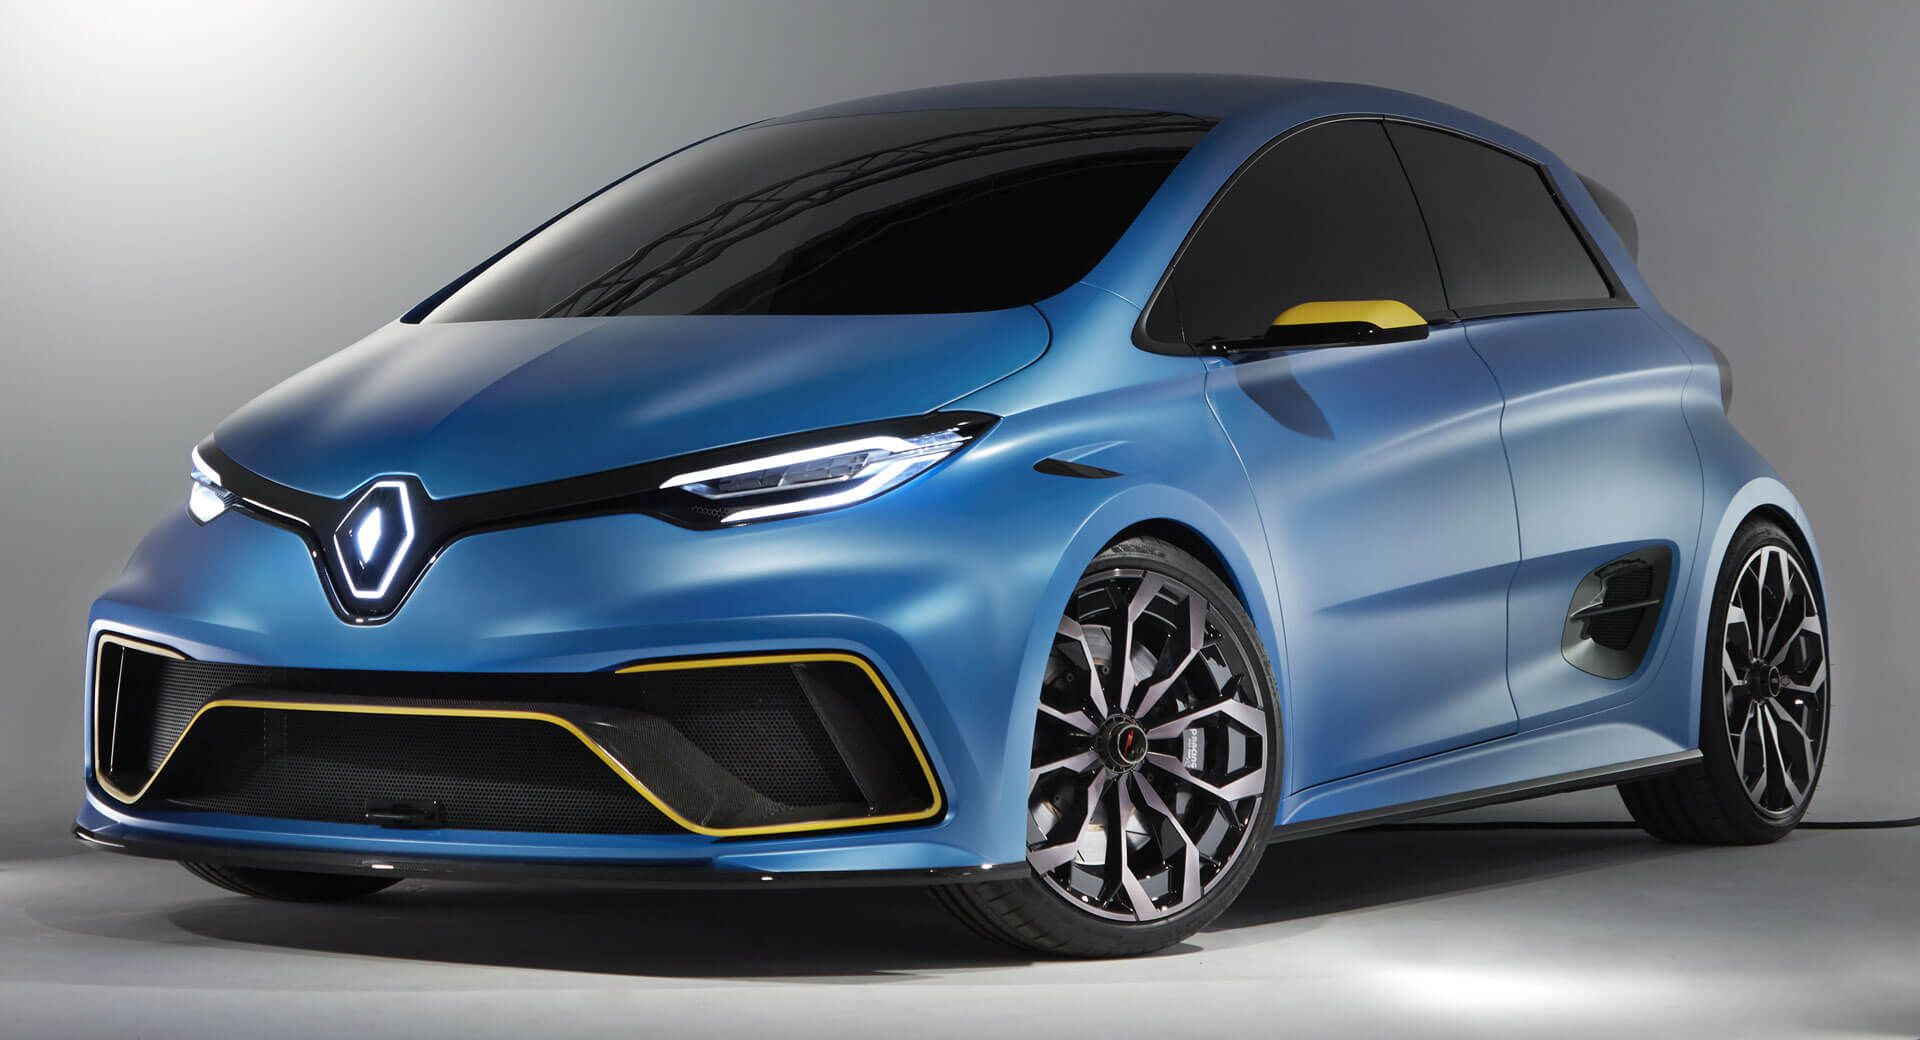 Renault Could Kill The Clio Rs Replace It With A Hot Electric Zoe Rs Electricvehicles Renault Renaultclio Renaultzoe Renault Zoe Renault New Renault Clio